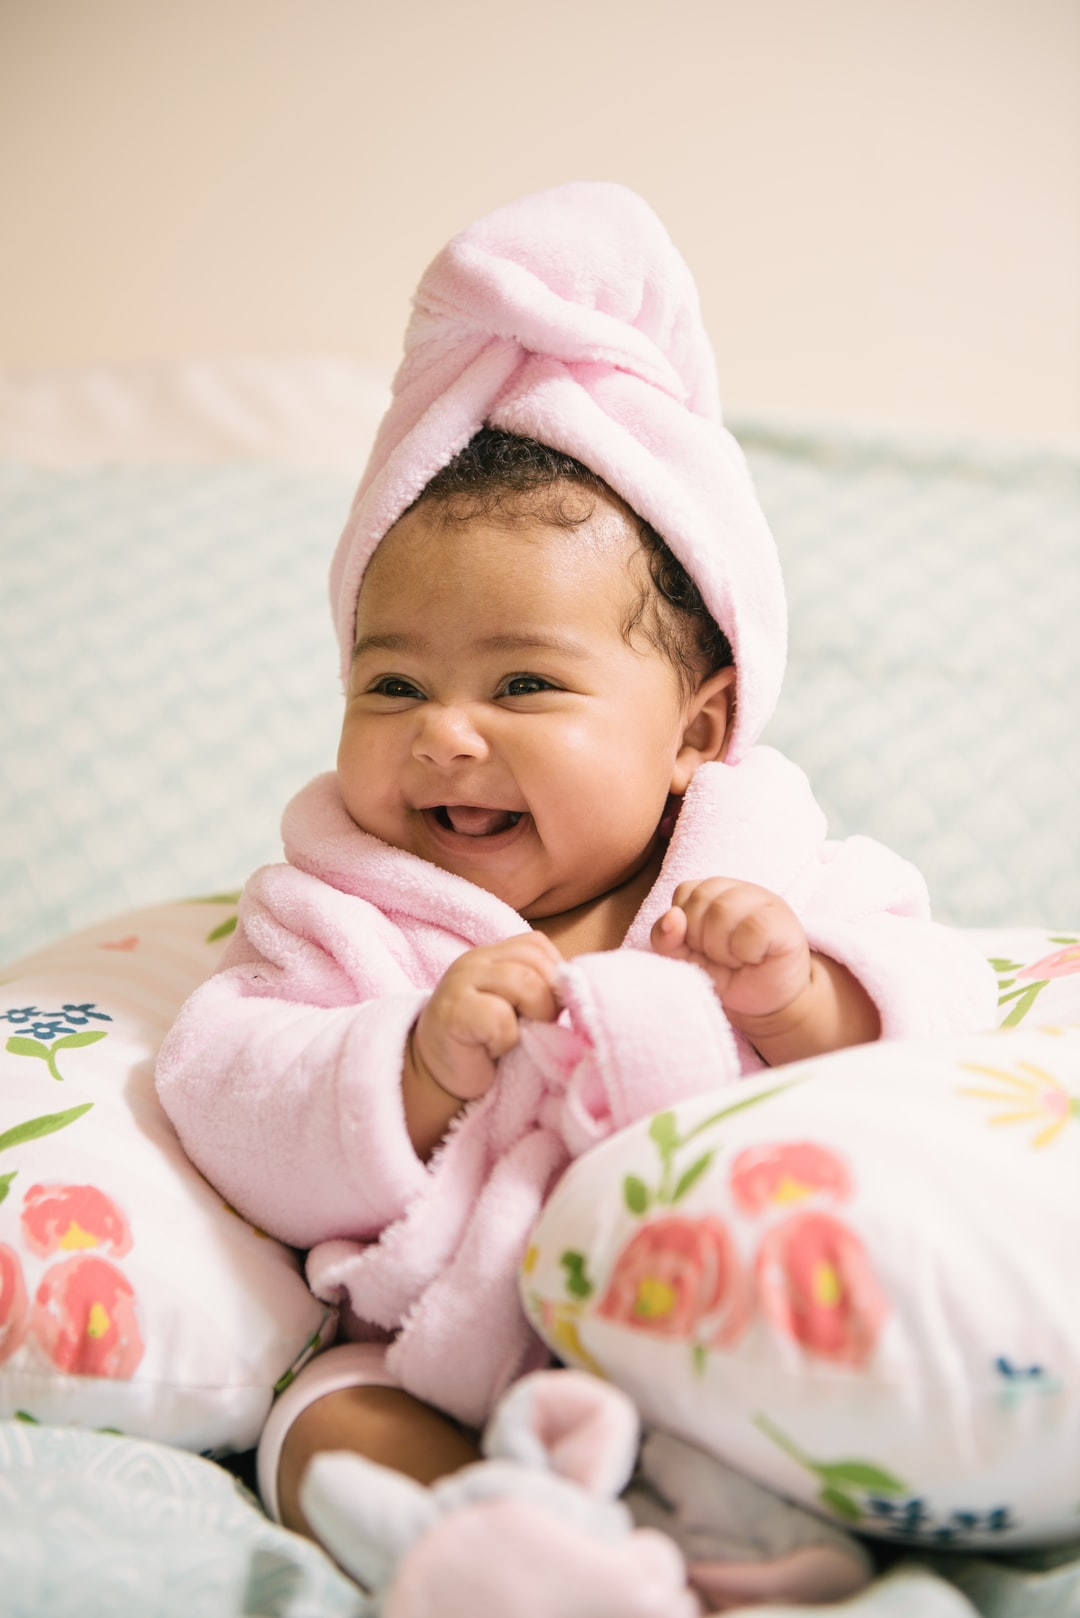 Baby With Robe Spa Day  in Boppy Pillow